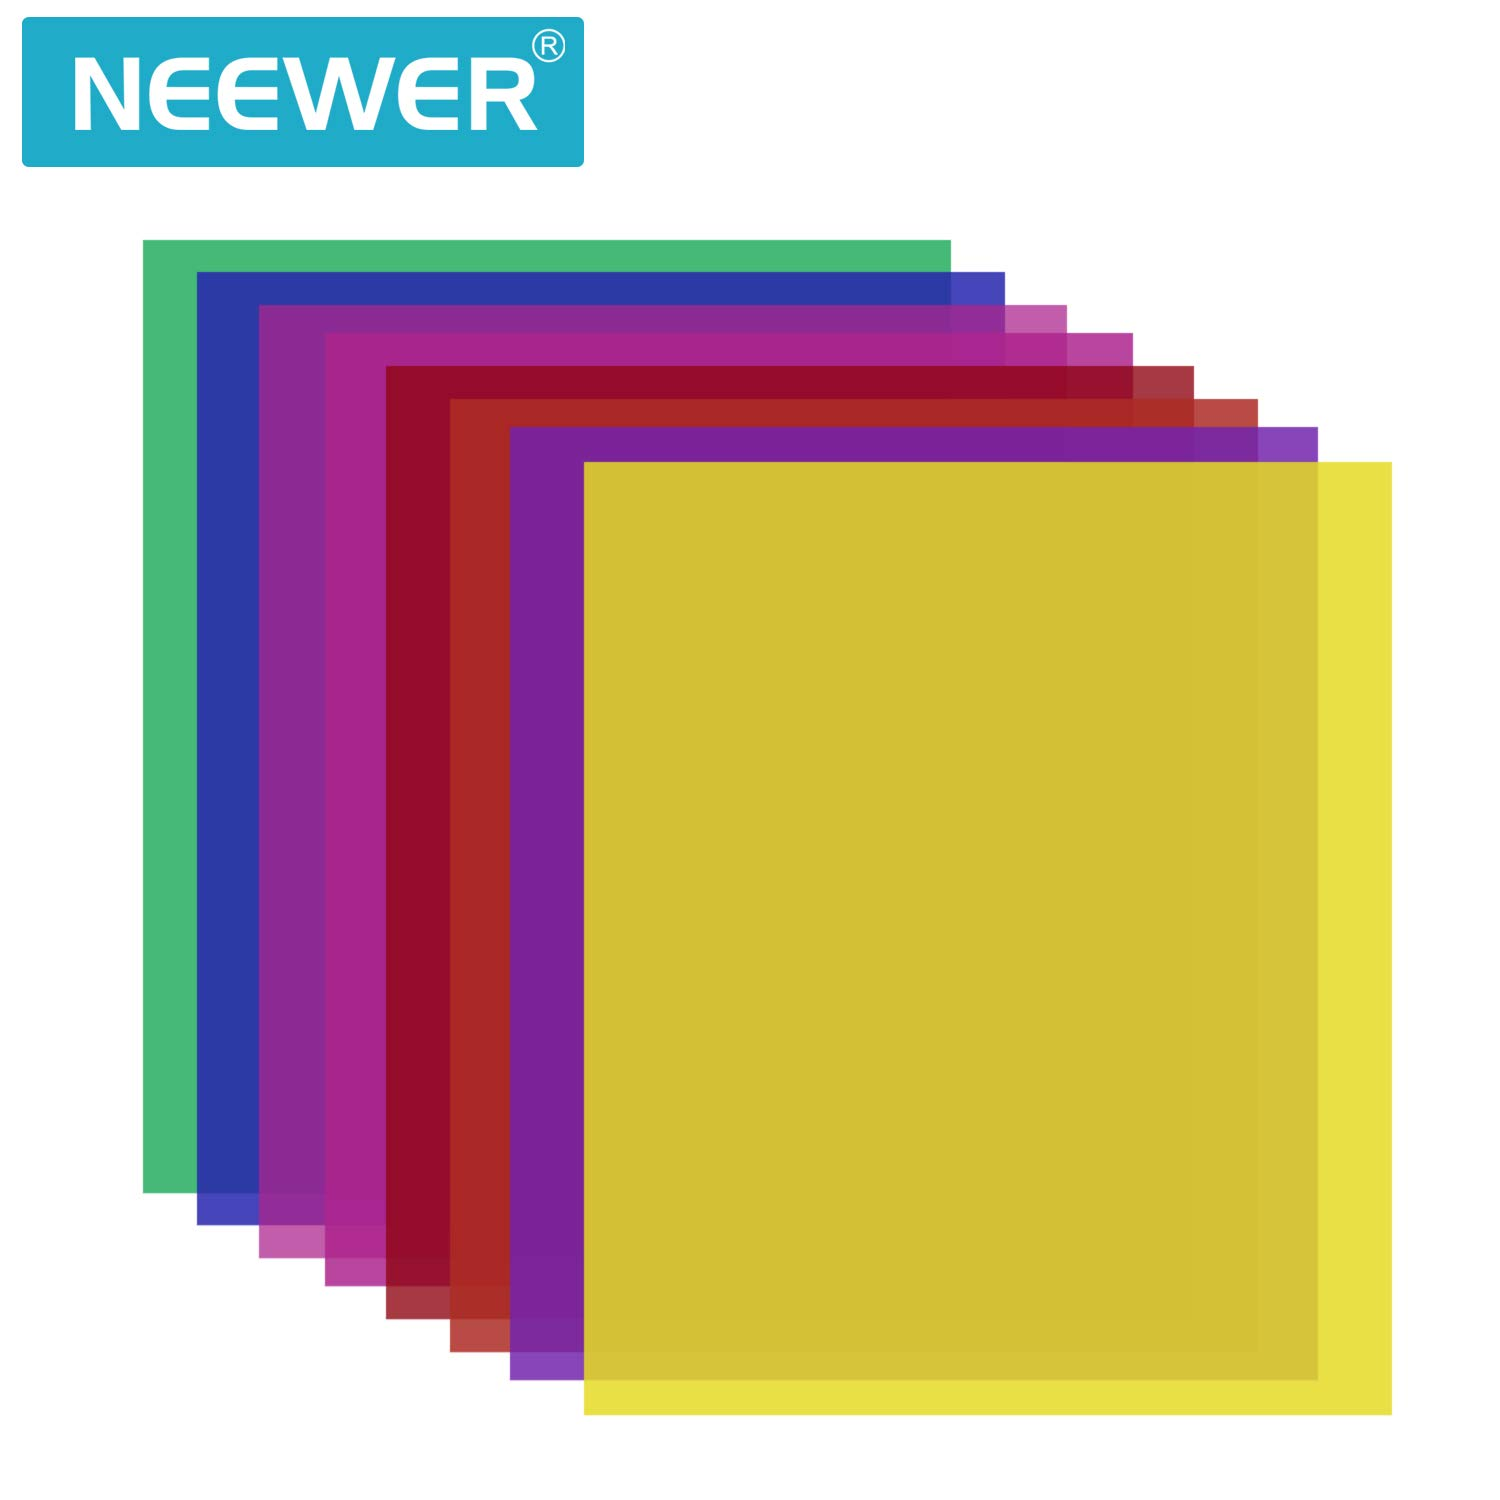 Neewer 8 Pieces Gel Color Filter with 8 Colors -16x20 inches Transparent Color Film Plastic Sheets, Correction Gel Light Filter for Photo Studio Strobe Flash, LED Video Light, DJ Light, etc. by Neewer (Image #7)